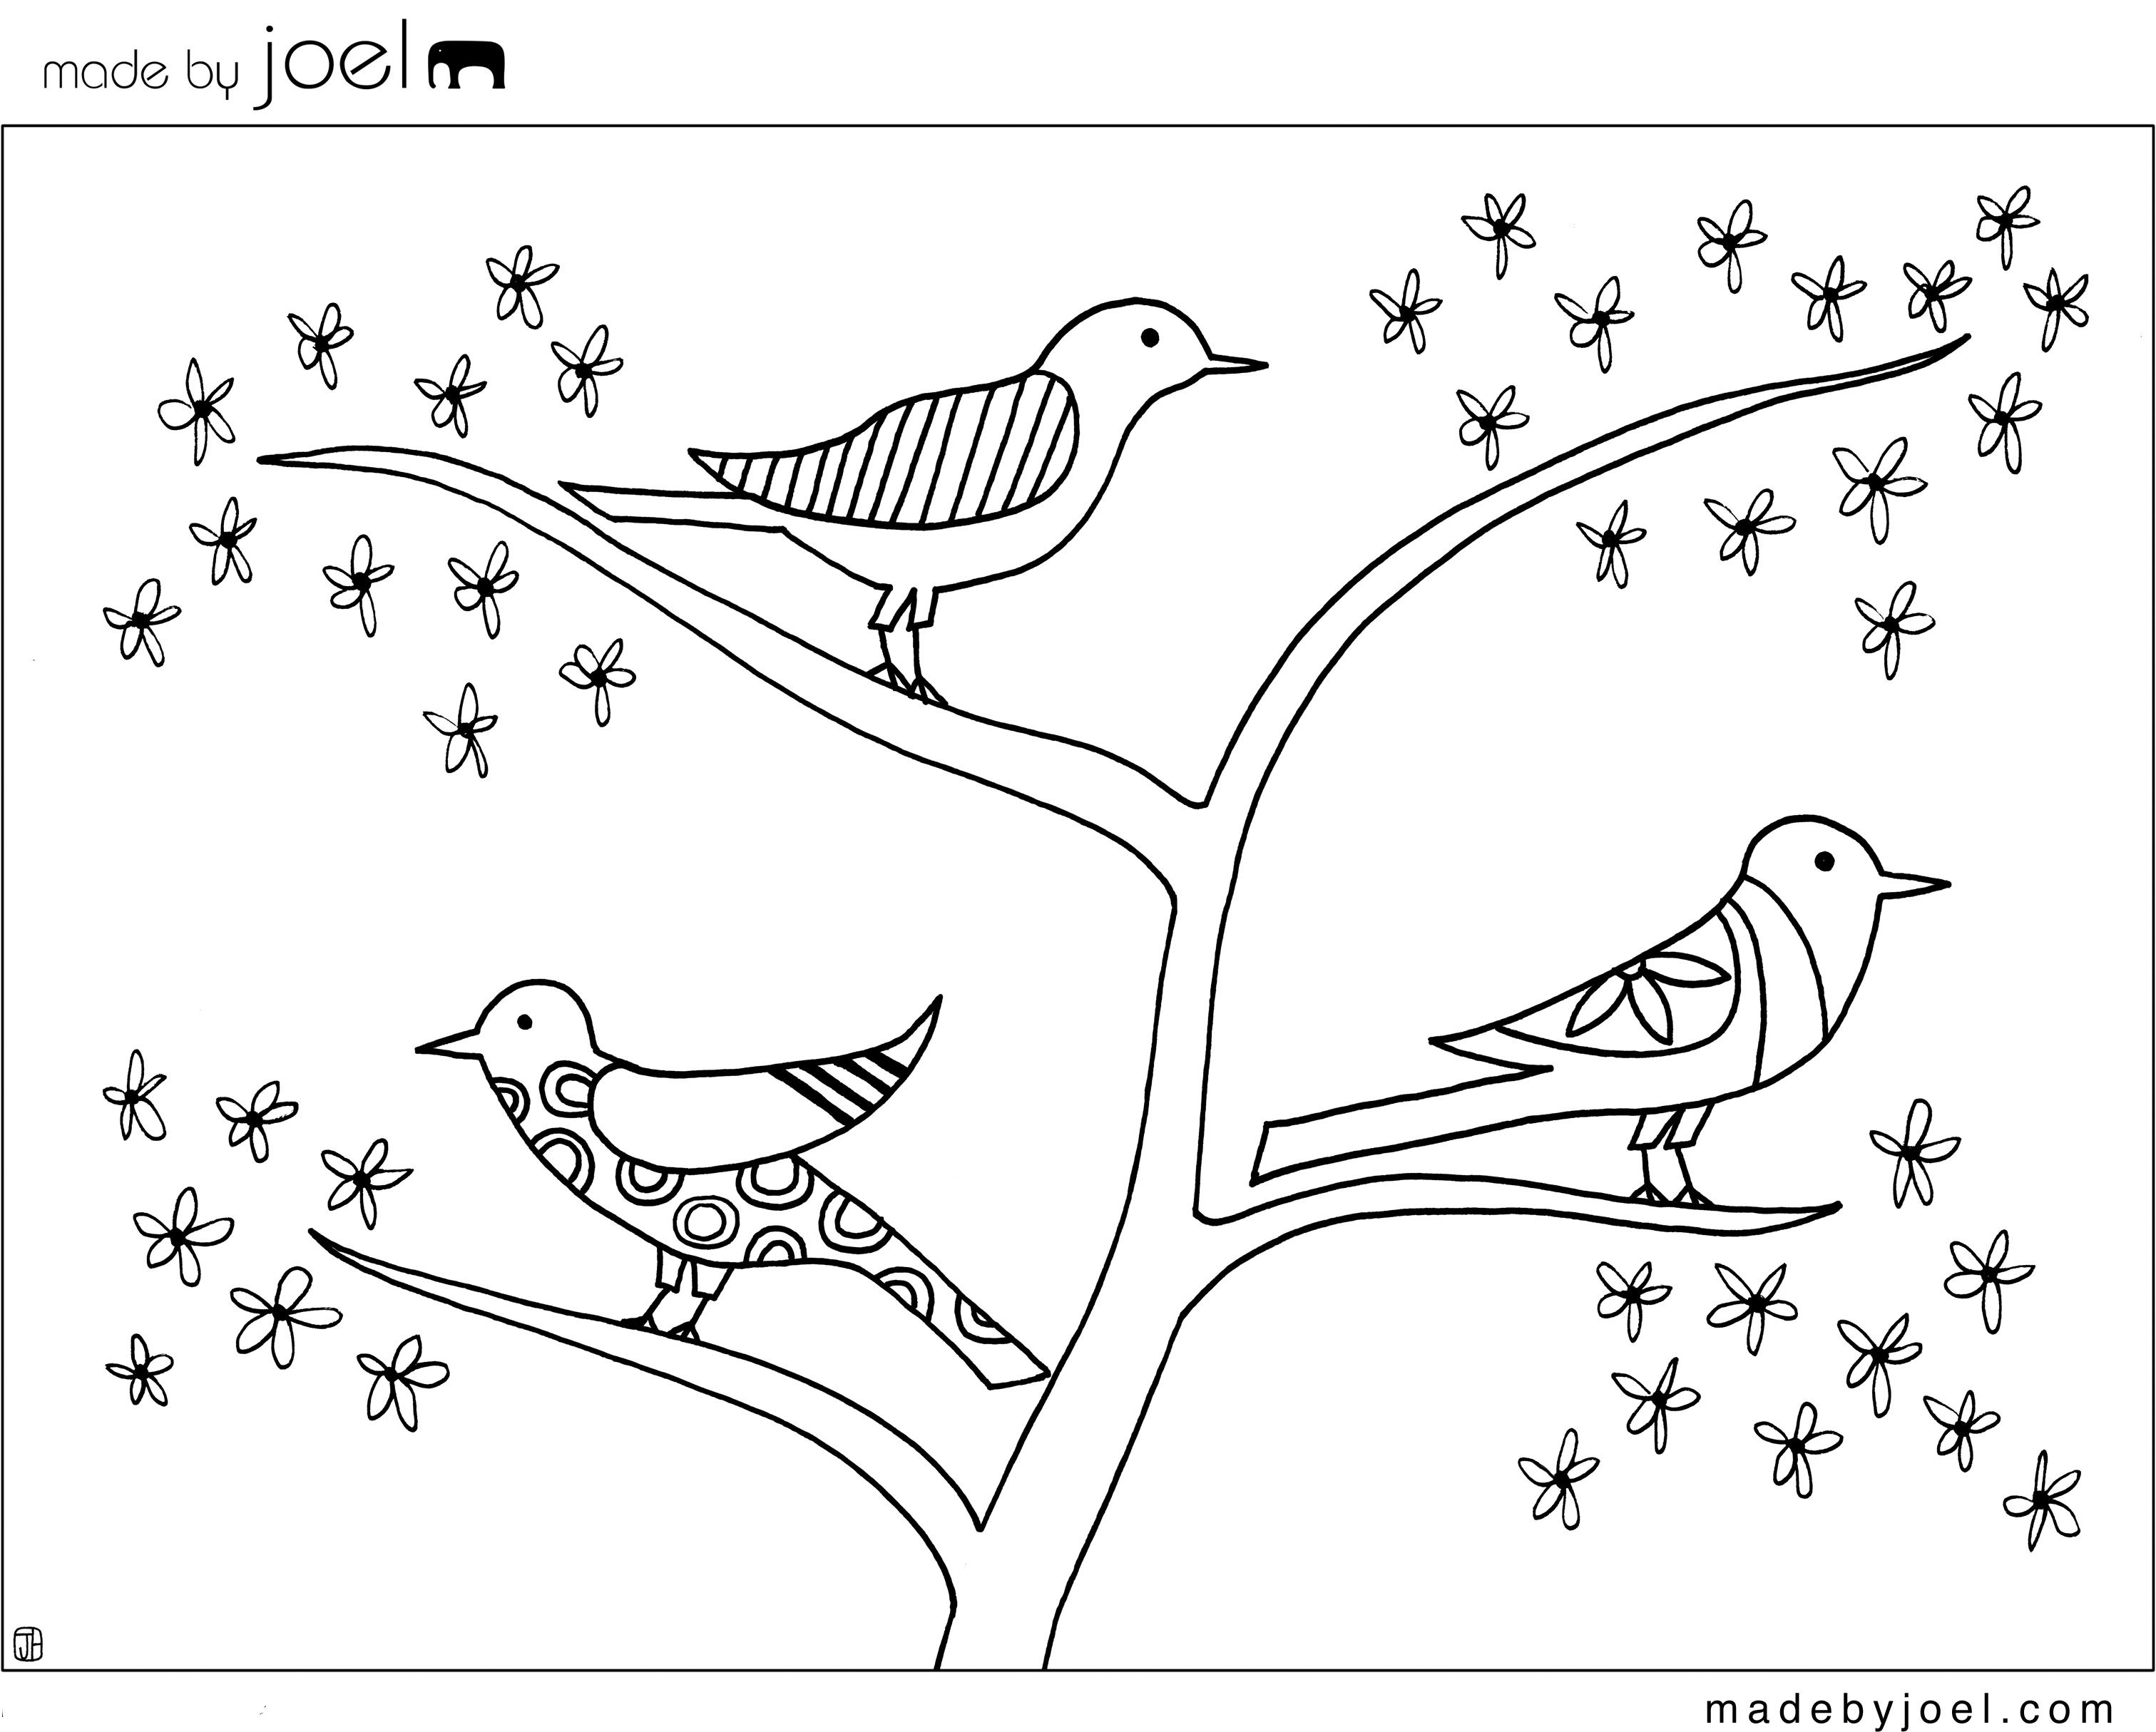 Coloring pages trees and flowers - Made By Joel Flower Tree Birds Coloring Sheet Lots Of Gorgeous Printable Colouring Sheets